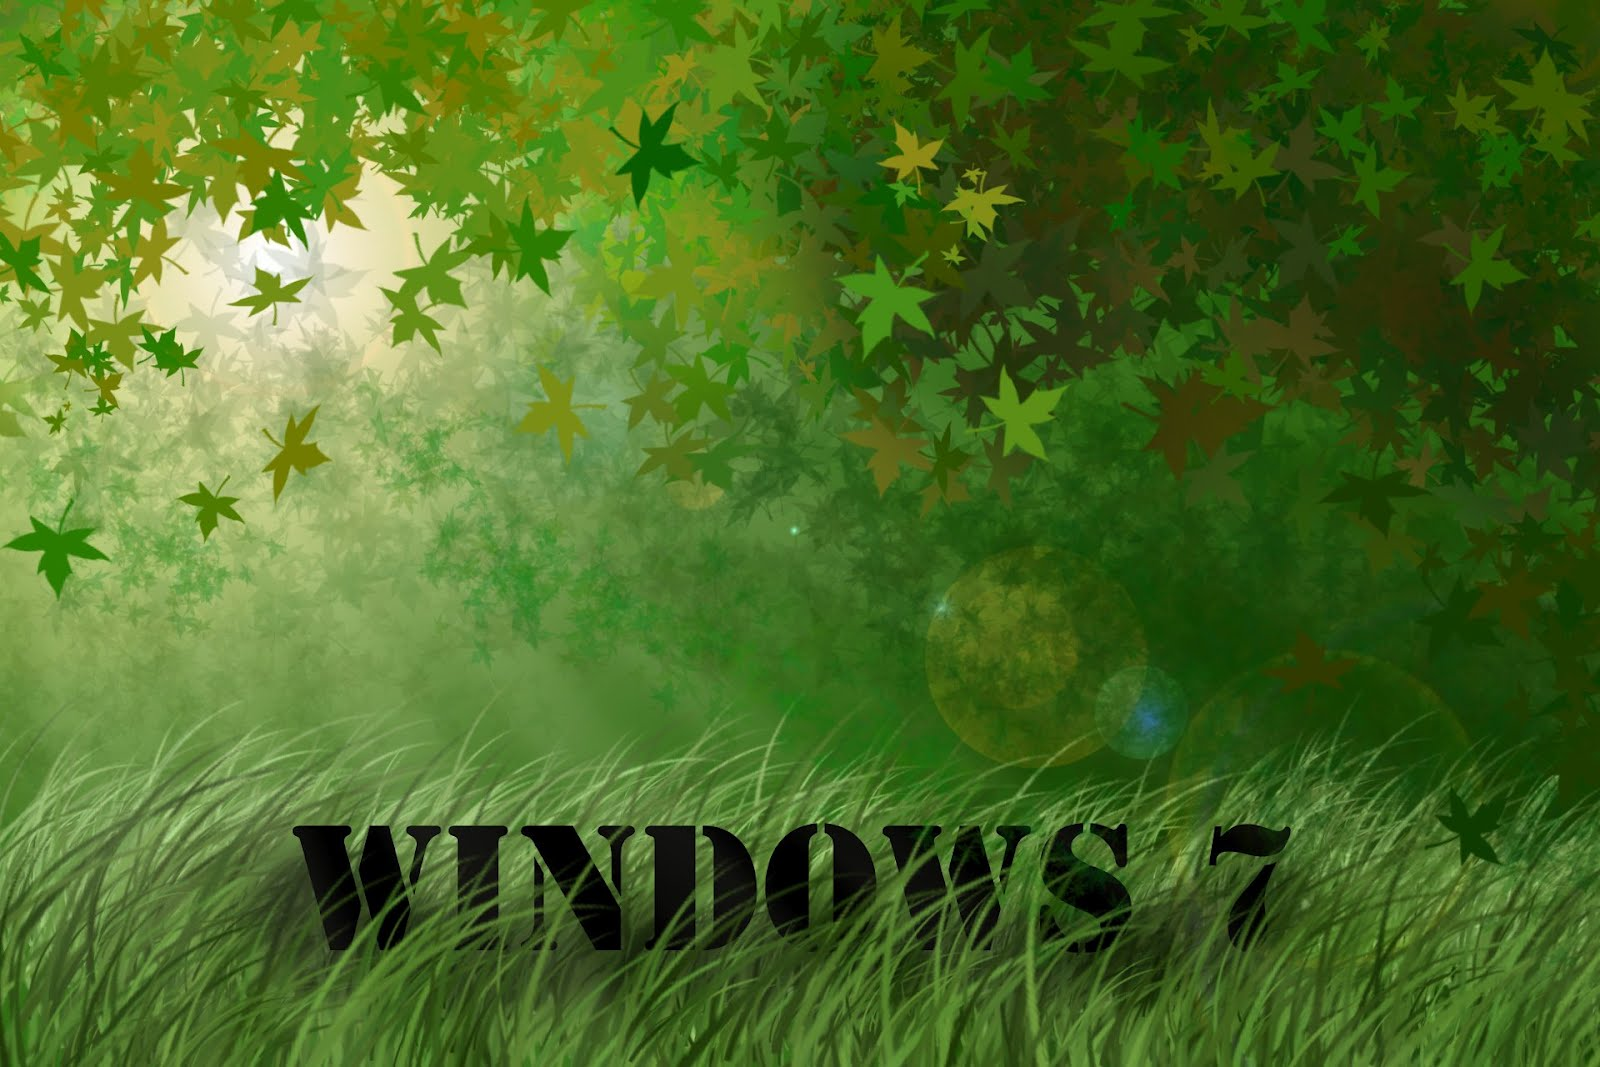 windows 7 grass wallpapers - wallpapers hd